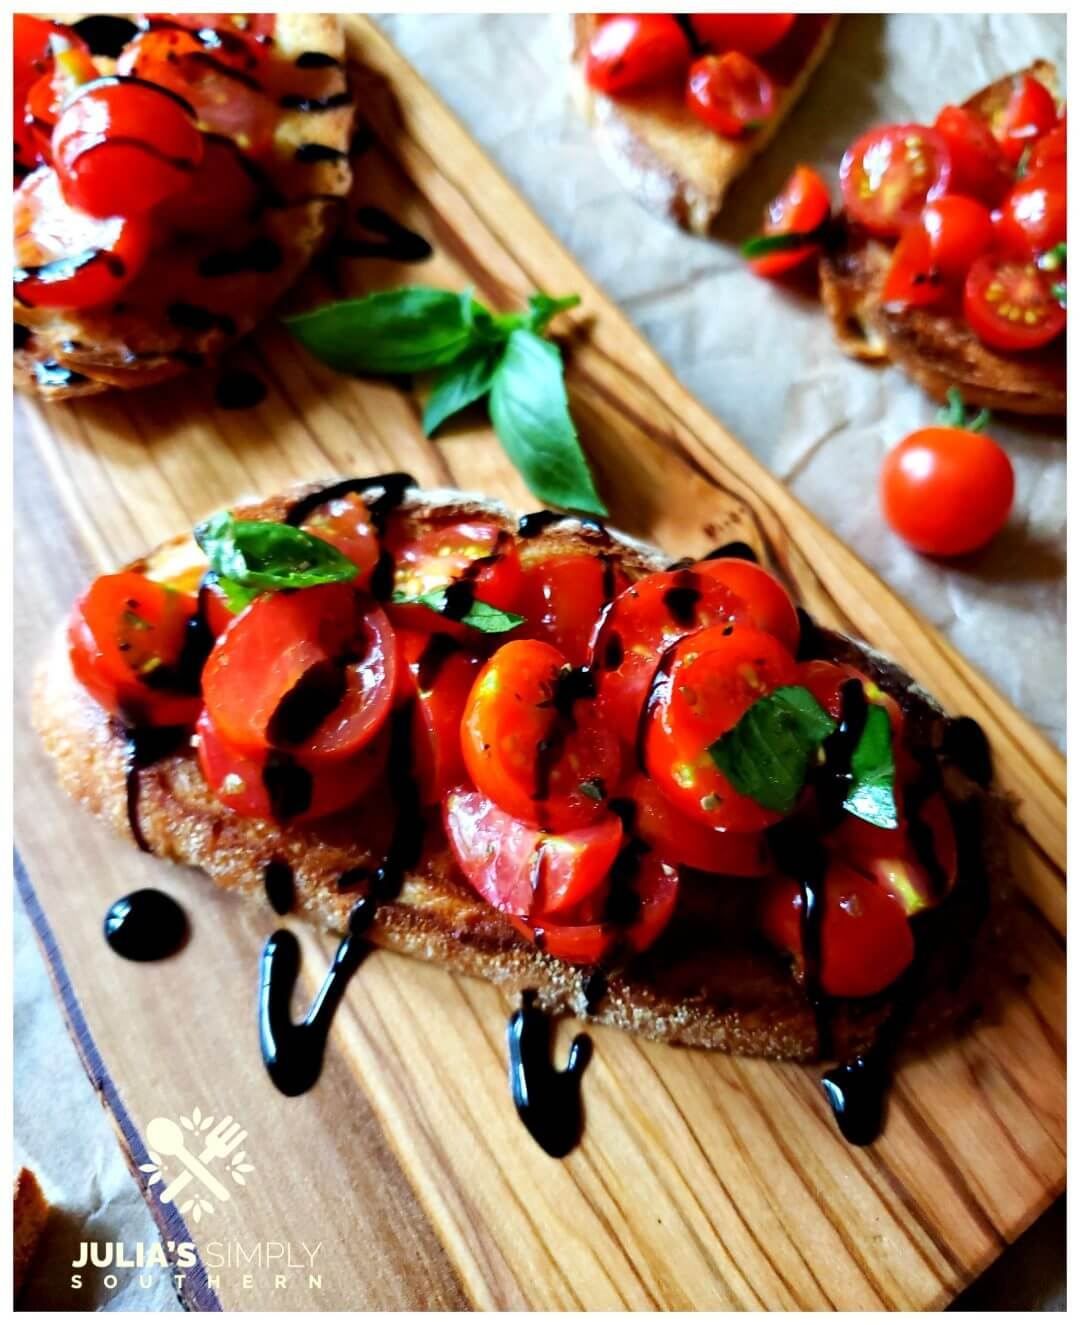 Recipe for Bruschetta made with tomatoes from the garden, herbs and garlic on toasted Italian bread with a balsamic glaze drizzle